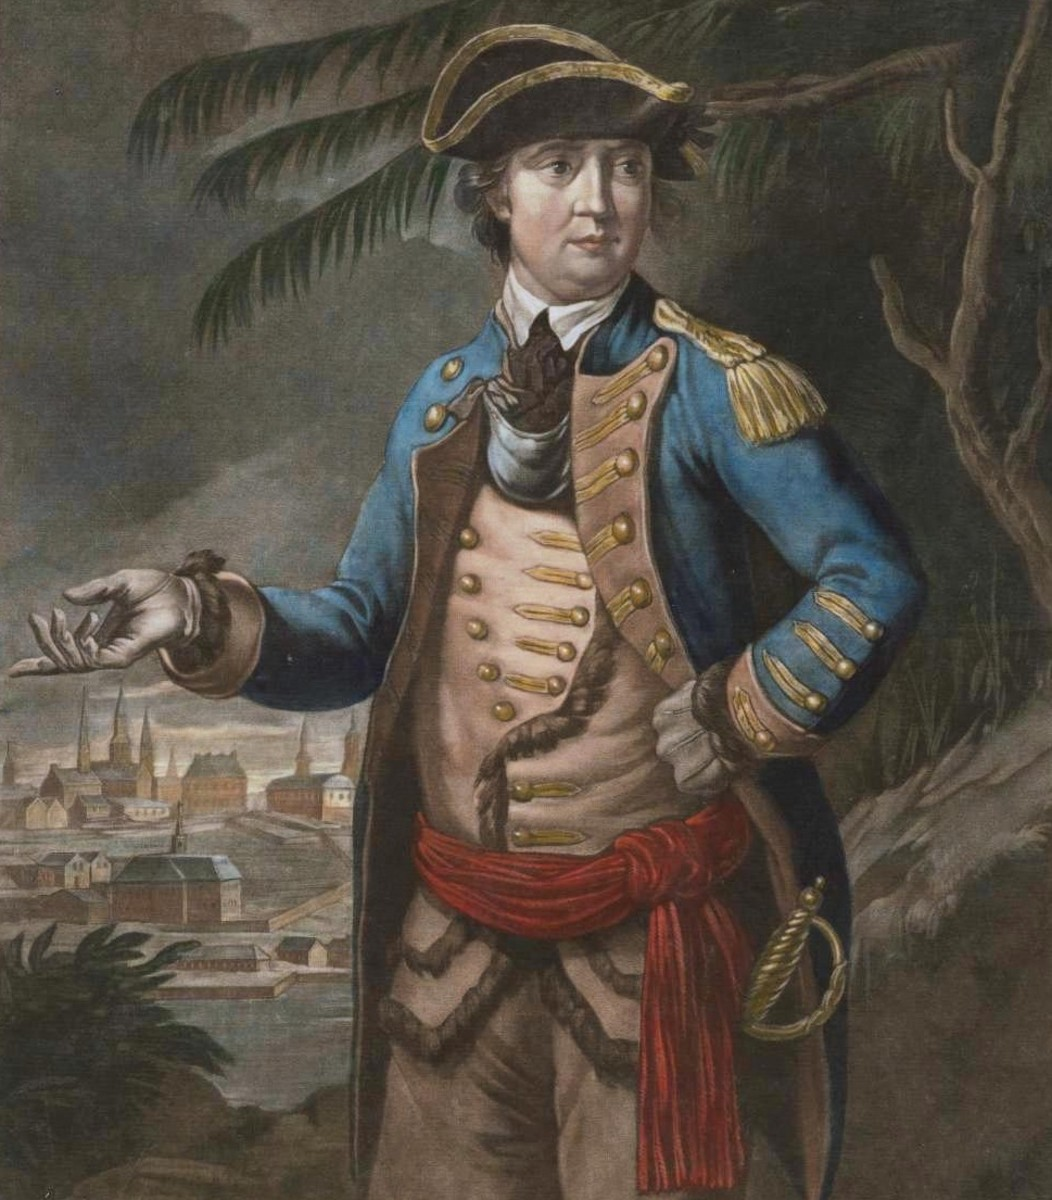 General Benedict Arnold, hero of Saratoga and infamous traitor